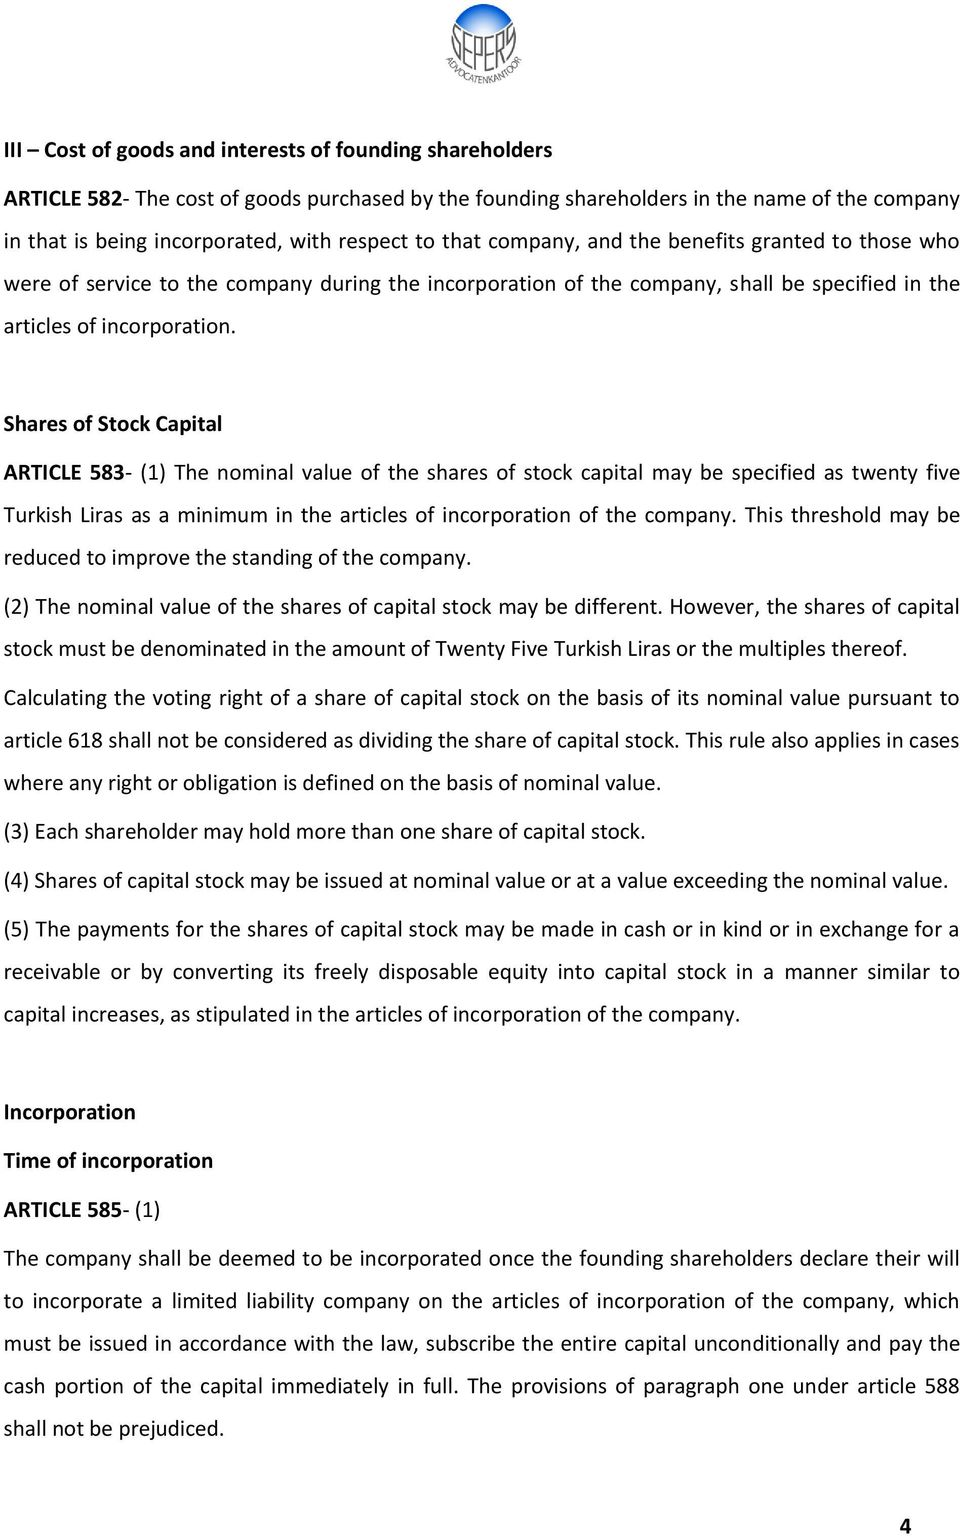 Shares of Stock Capital ARTICLE 583- (1) The nominal value of the shares of stock capital may be specified as twenty five Turkish Liras as a minimum in the articles of incorporation of the company.